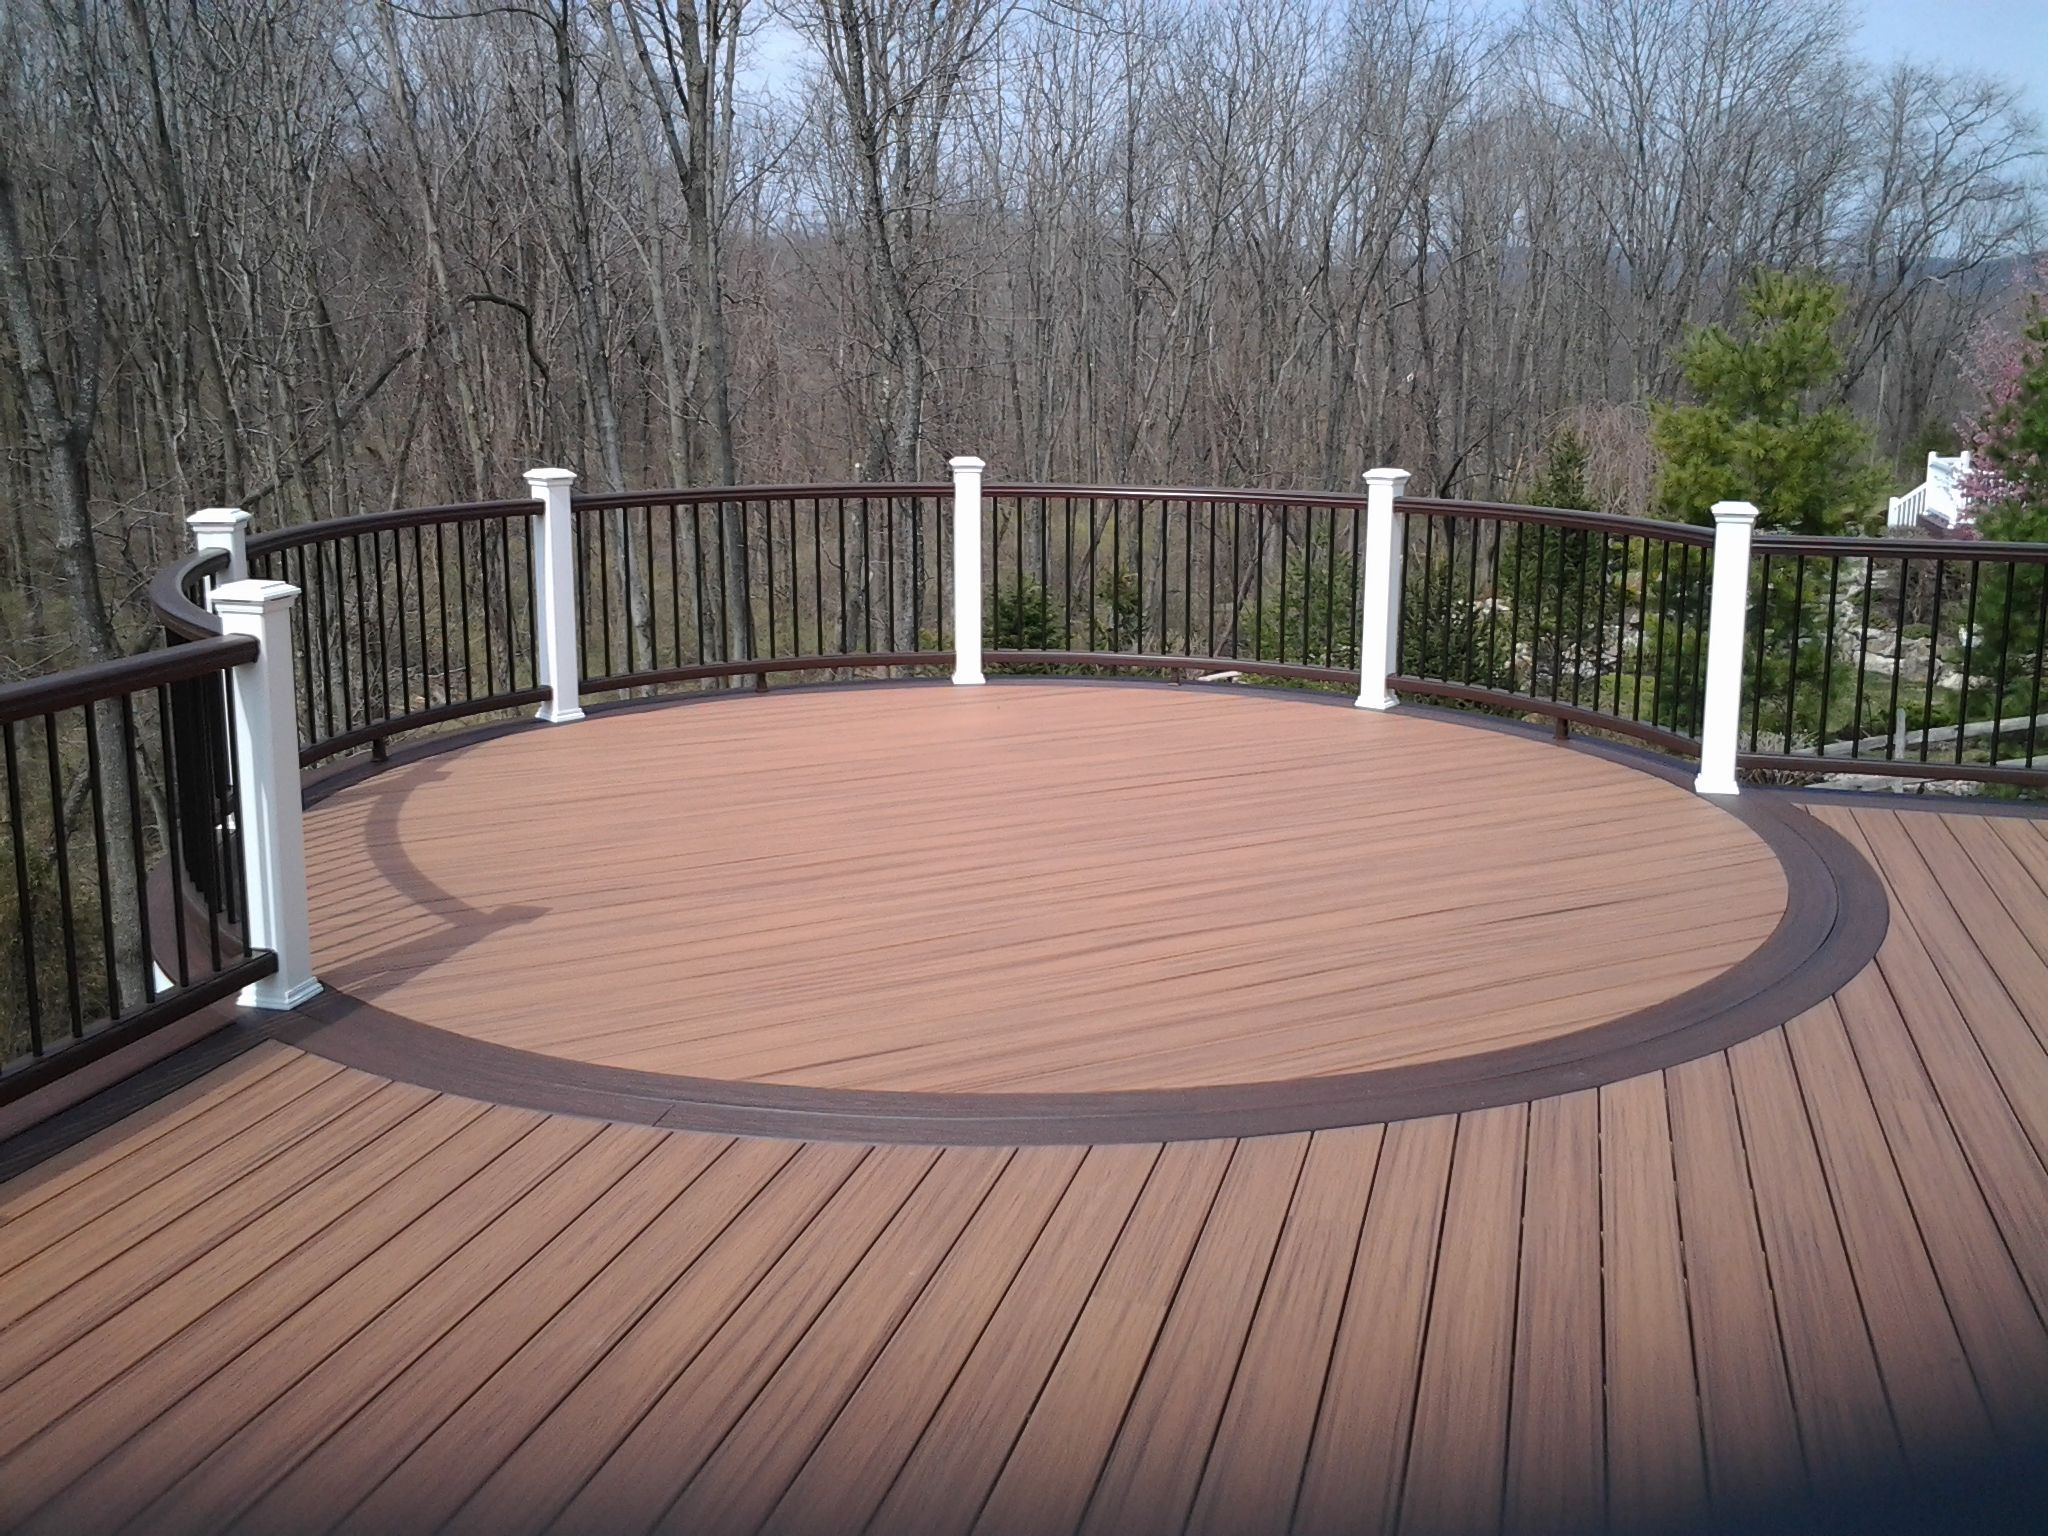 Amazing Decks A Leading Patio and Deck Builder in PA & NJ   Hot ...